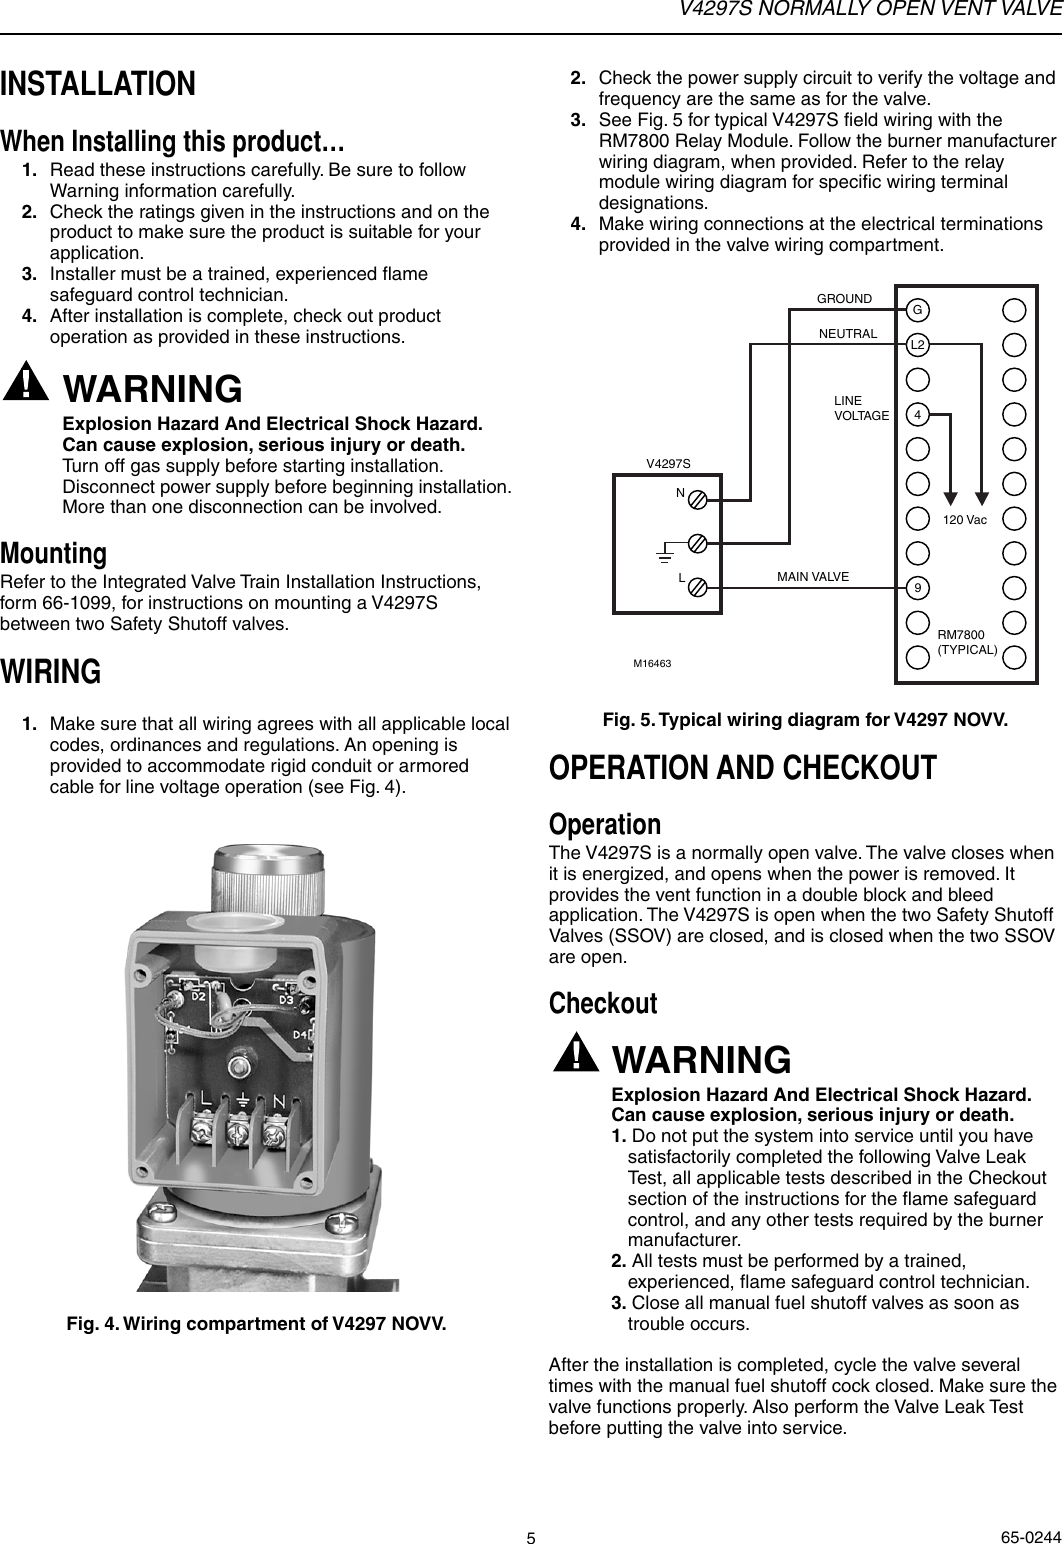 Honeywell Vent Valve V4297s Users Manual 65 0244 Normally Open Rm7800 Wiring Diagram Page 5 Of 8